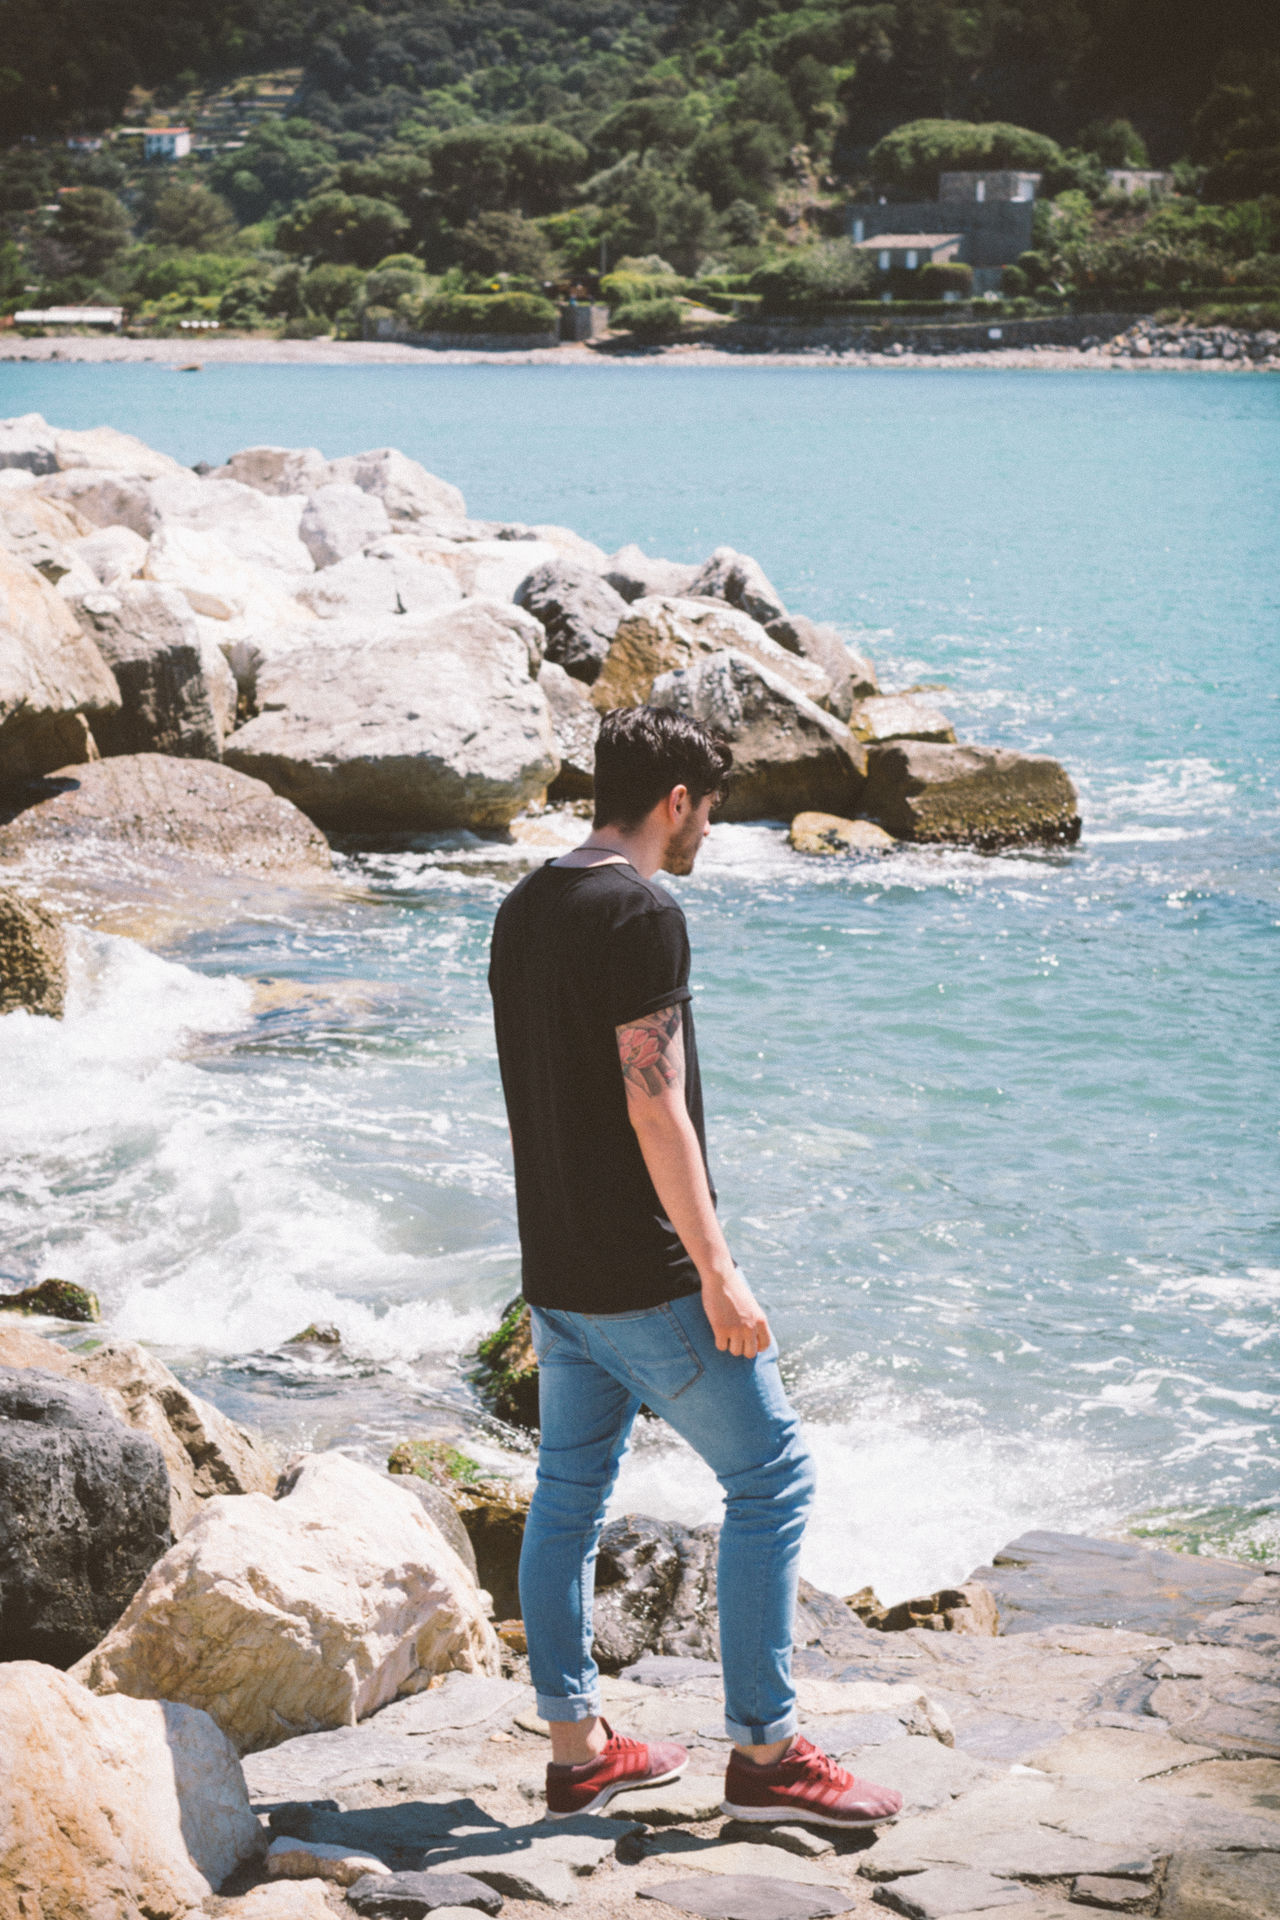 Adult Beach Beauty In Nature Casual Clothing Day Full Length Italy La Spezia Leisure Activity Lifestyles Nature One Person Outdoors People Real People Rear View Rock - Object Sea Sky Standing Water Wave Young Adult Young Men